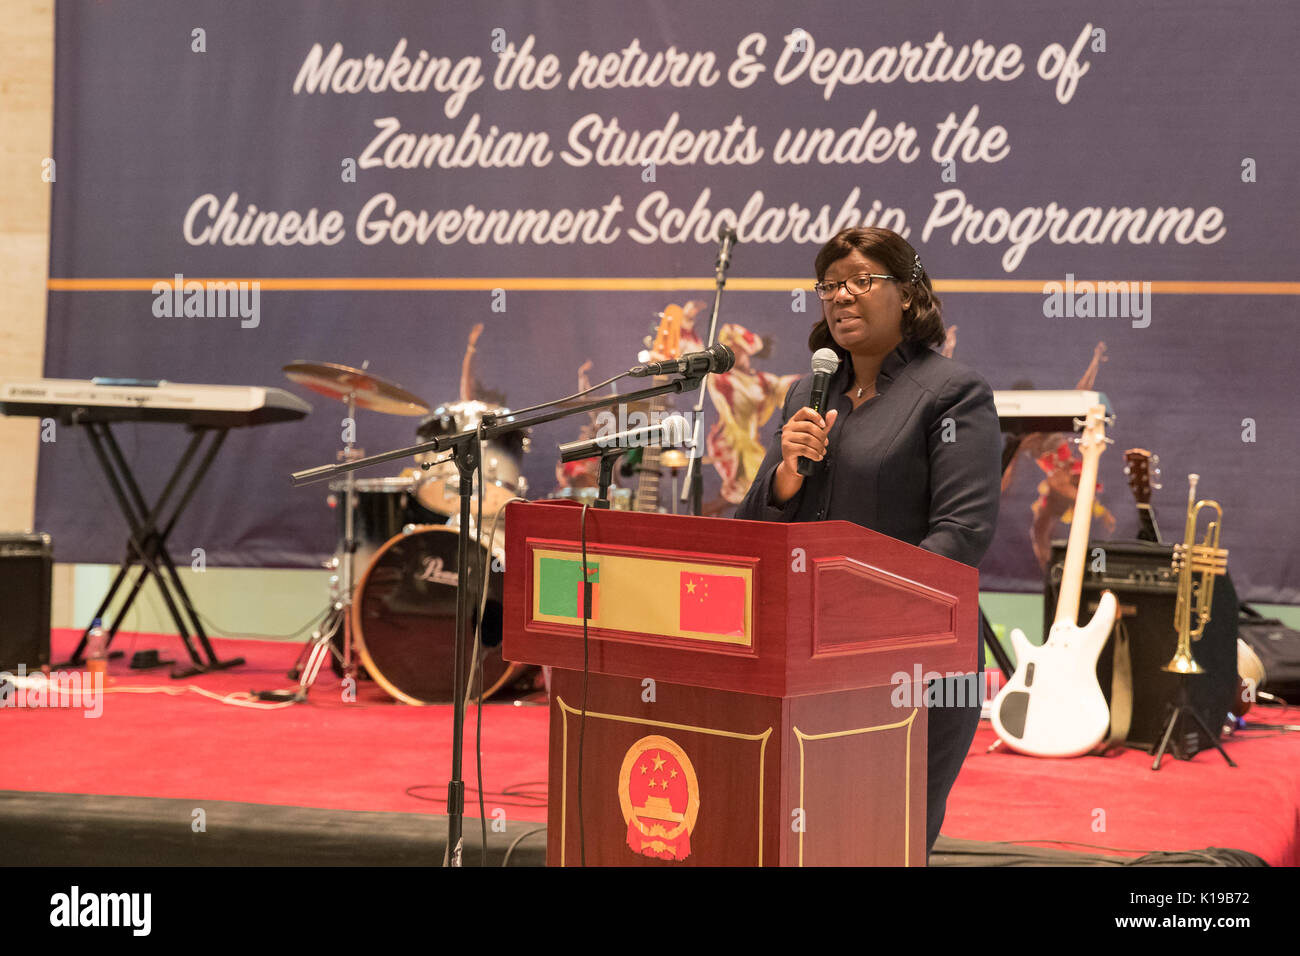 (170826) -- LUSAKA, Aug. 26, 2017 (Xinhua) -- Zambia's Acting Minister of Higher Education Sylvia Chalikosa  speaks during the ceremony at the National Museum in Lusaka, Zambia, Aug. 25, 2017. The Chinese Embassy in Zambia on Friday held a grand ceremony to welcome back as well as bid farewell to students who have received scholarships to study in China. (Xinhua/Peng Lijun) (srb) - Stock Image